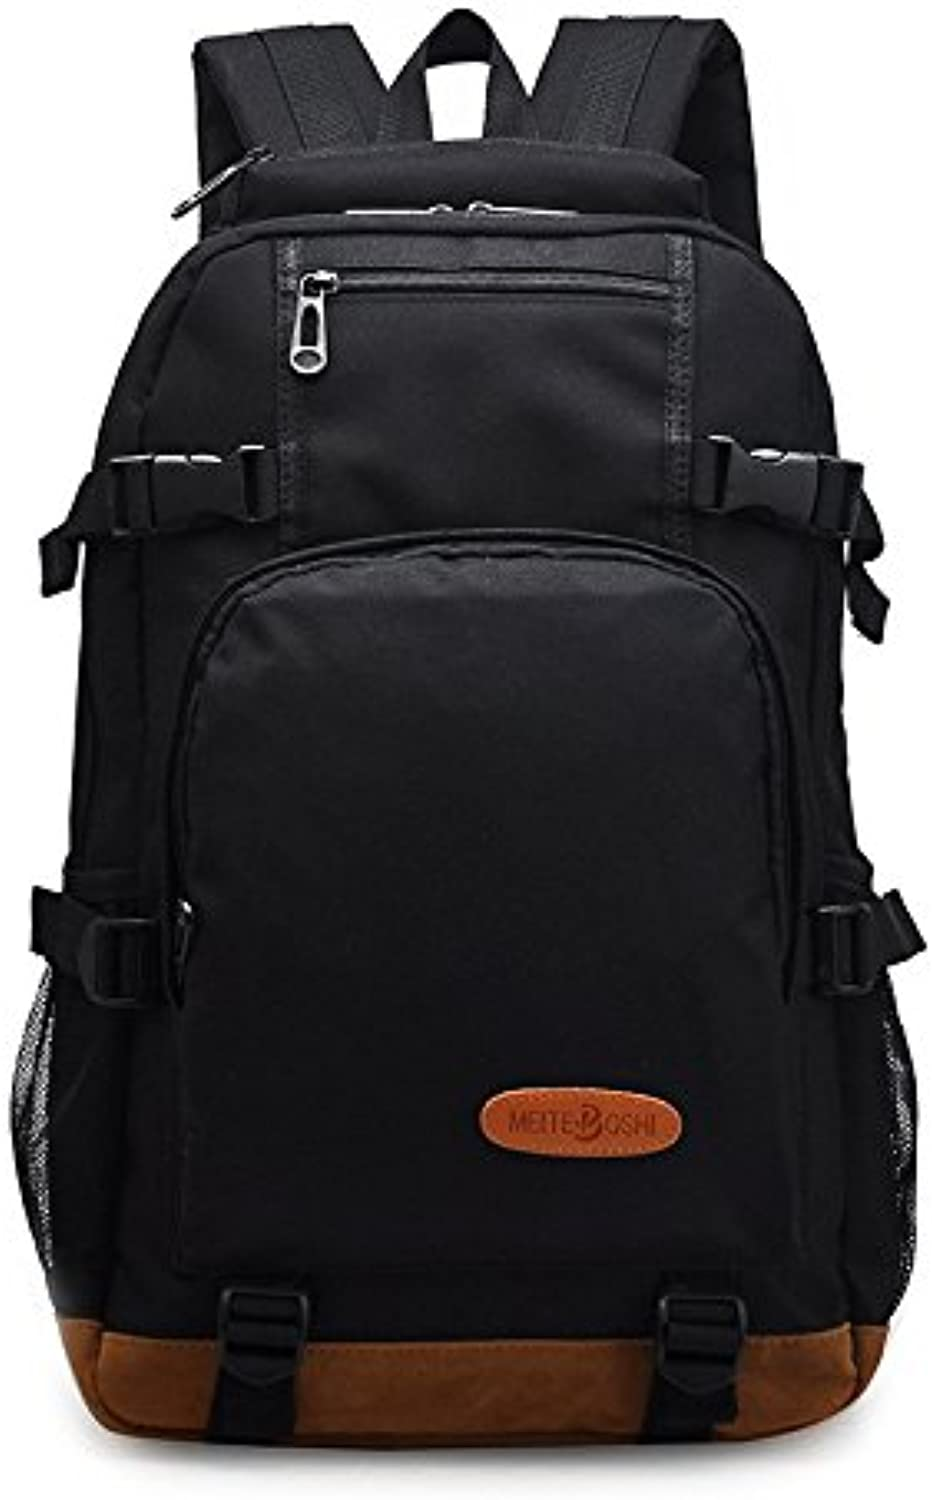 The Original Single Shoulder Bag Men and Women Bag Oxford Cloth Korean Version of The School to Send a Backpack Bag Computer Bag 29cm13cm46cm, Black